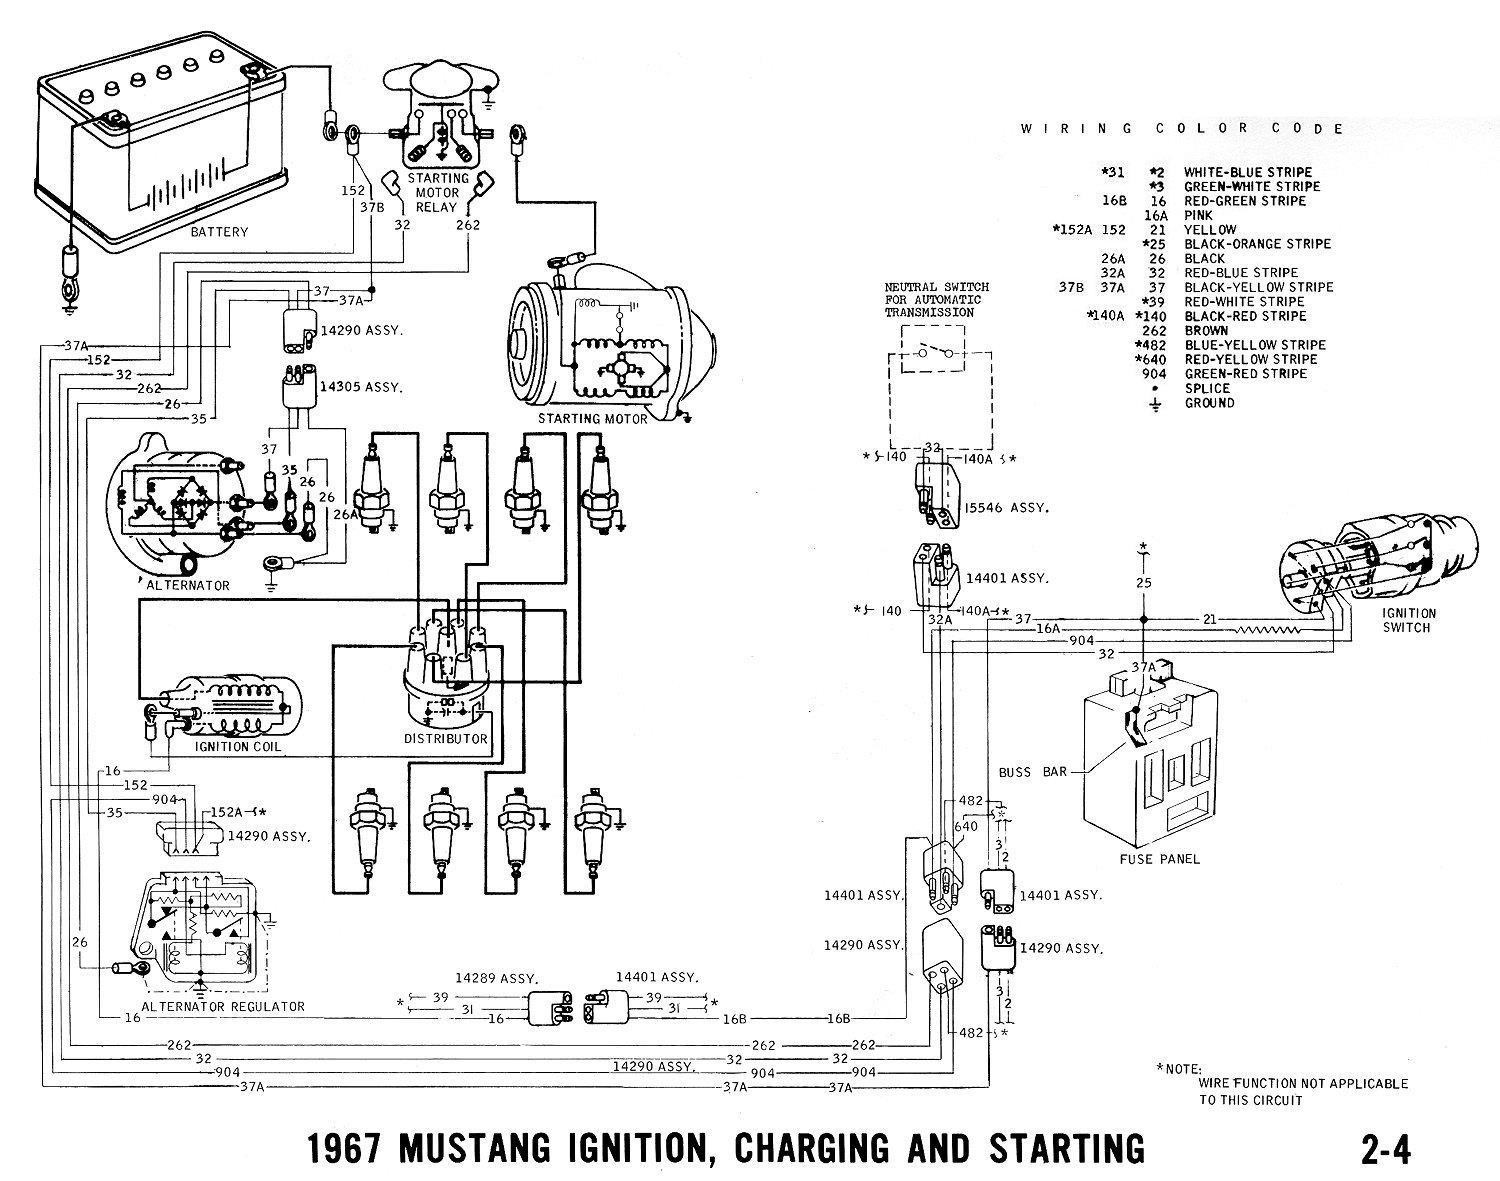 hight resolution of 66 mustang horn wiring diagram wiring diagram 66 mustang horn wiring diagram